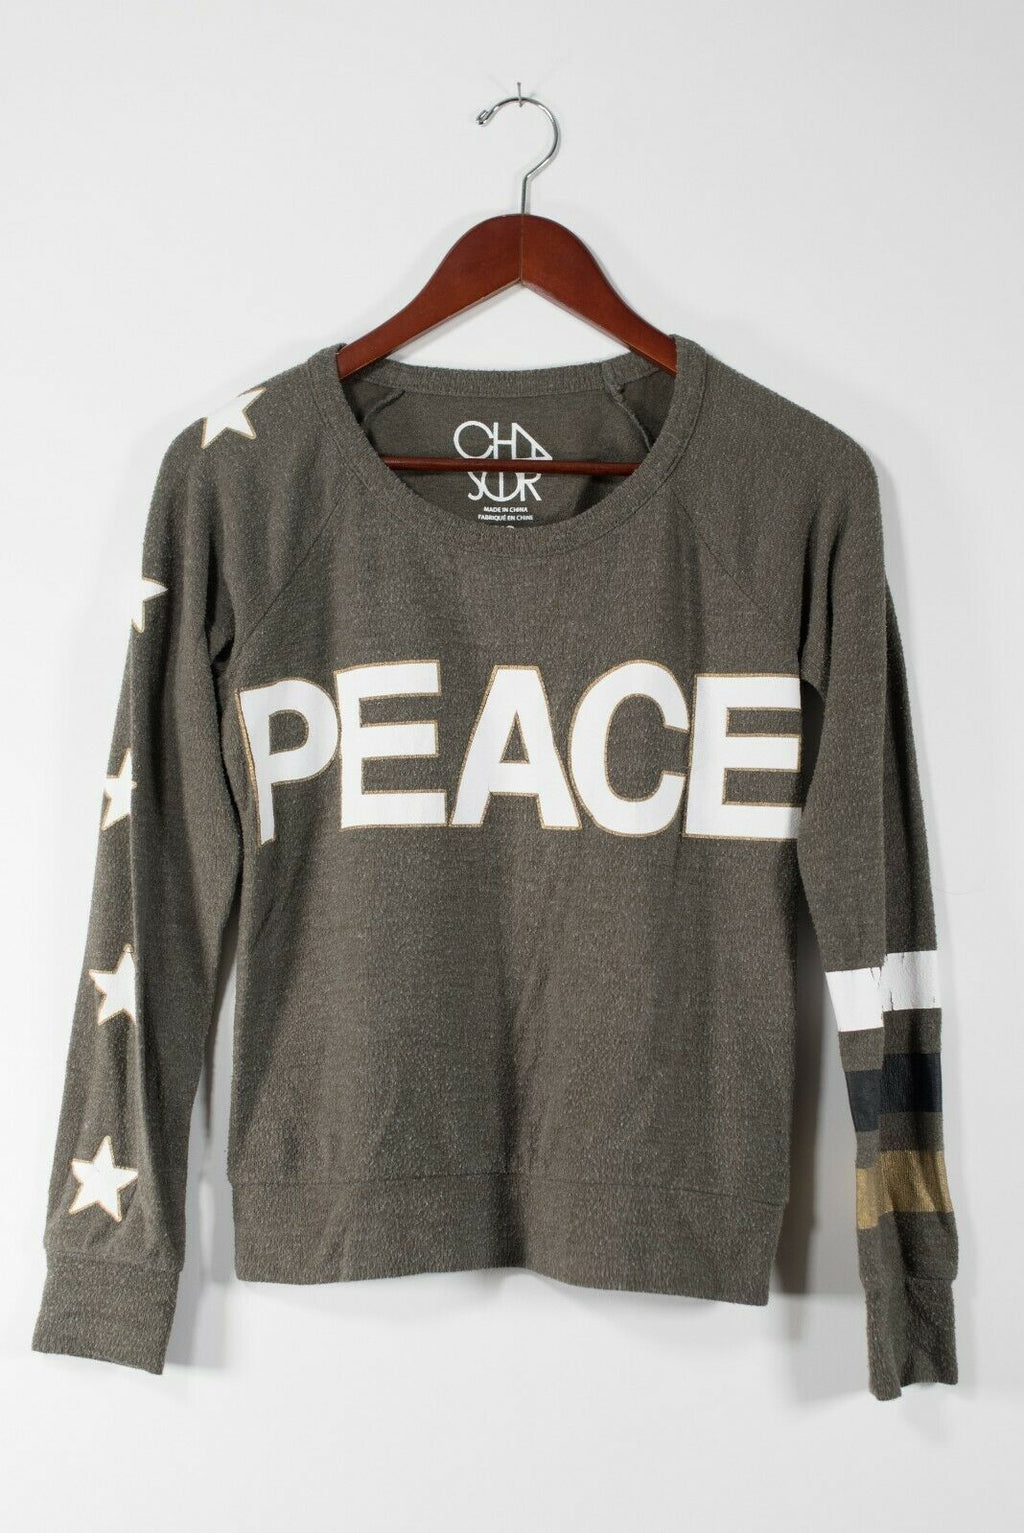 Chaser Womens Size XS Green Pullover Sweater Peace Graphic Print Star Knit Shirt